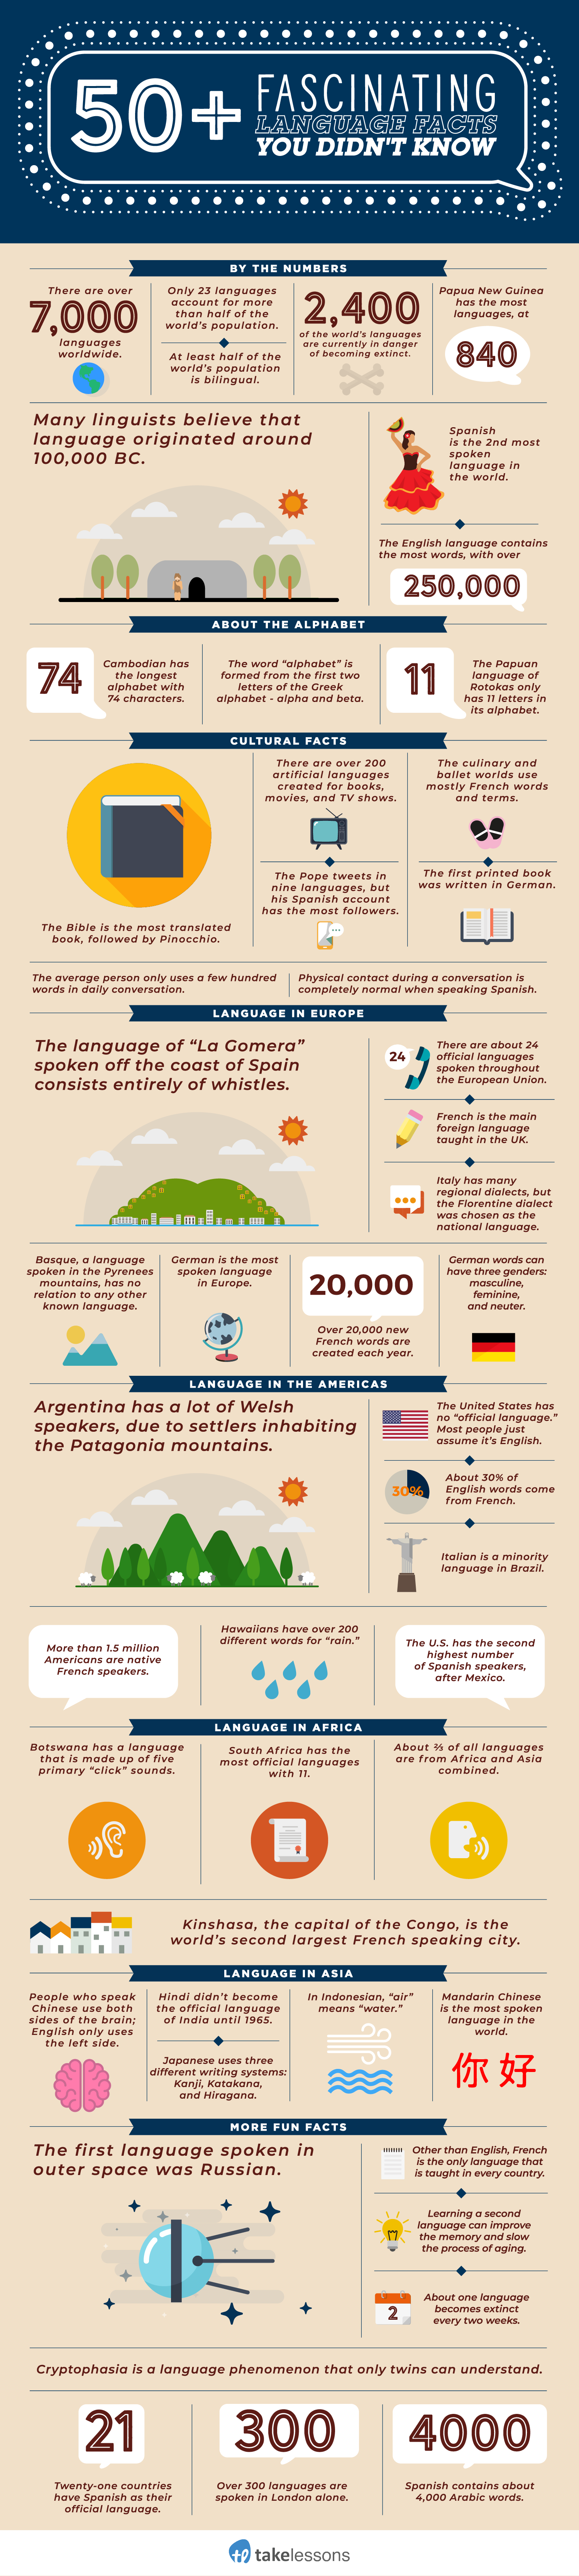 Fascinating facts about language